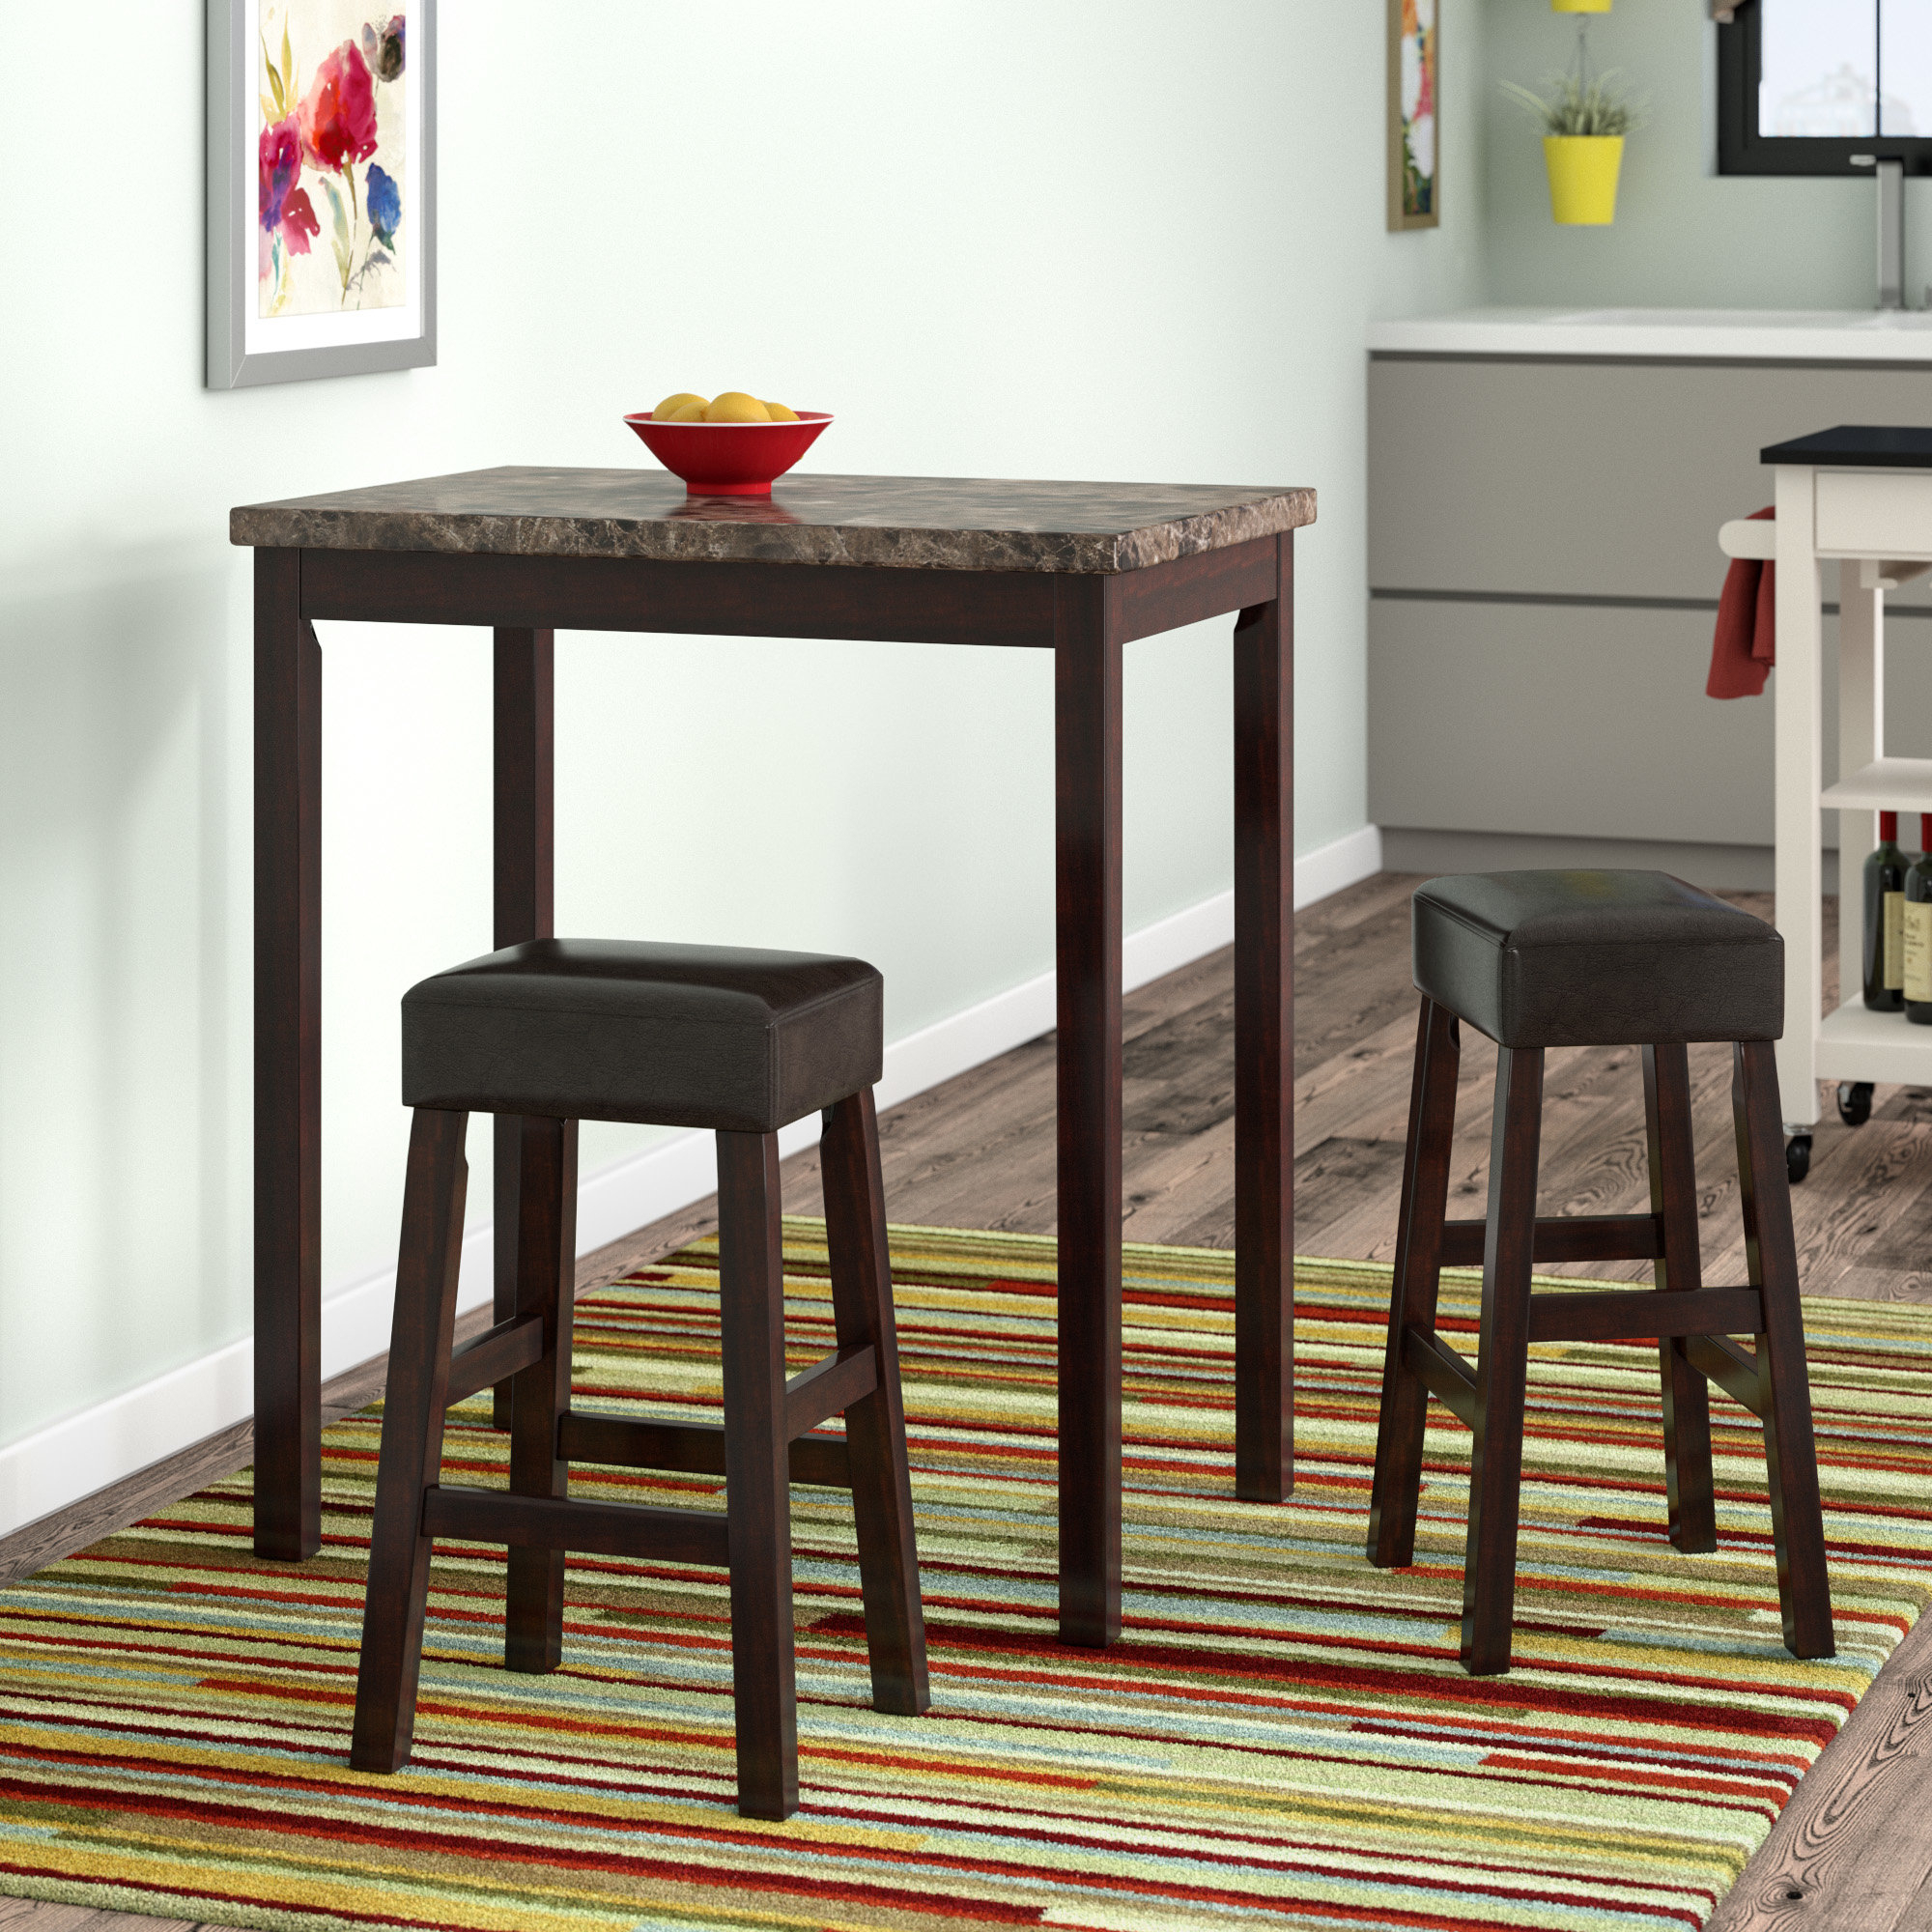 Deitch 3 Piece Counter Height Dining Set Throughout Newest Tappahannock 3 Piece Counter Height Dining Sets (View 8 of 20)